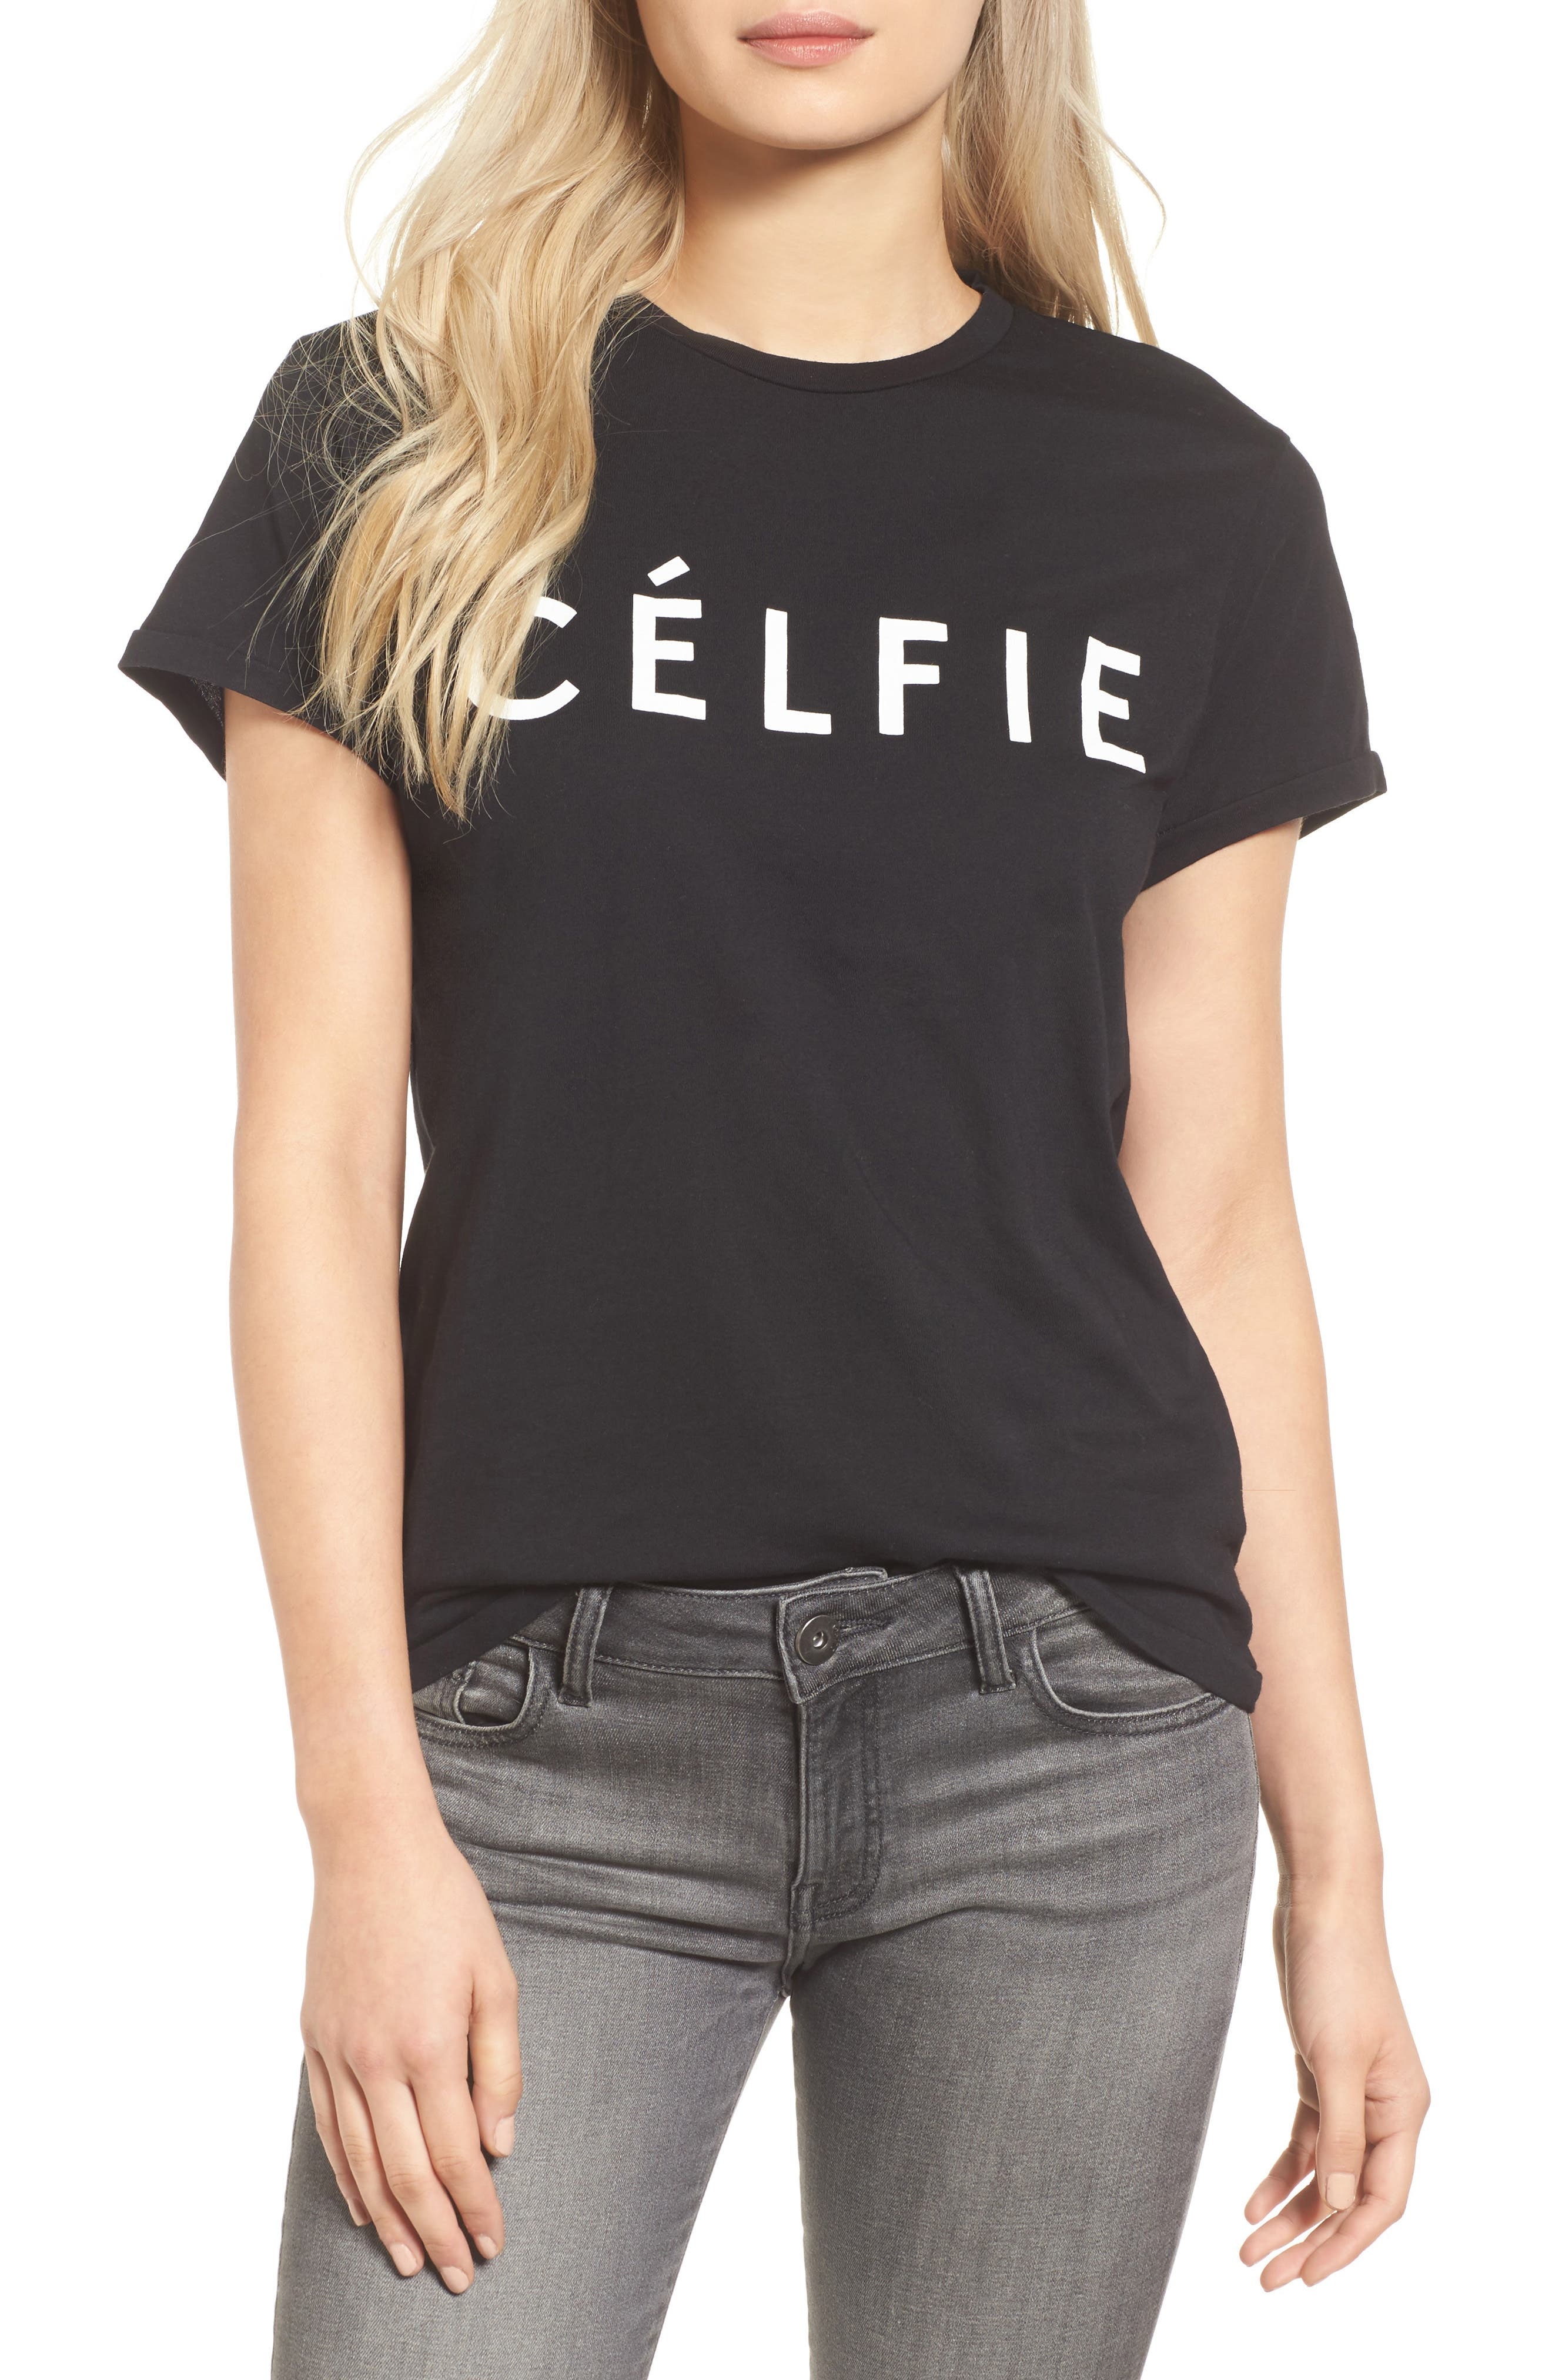 SINCERELY JULES, 'Célfie' Graphic Tee, Main thumbnail 1, color, 001